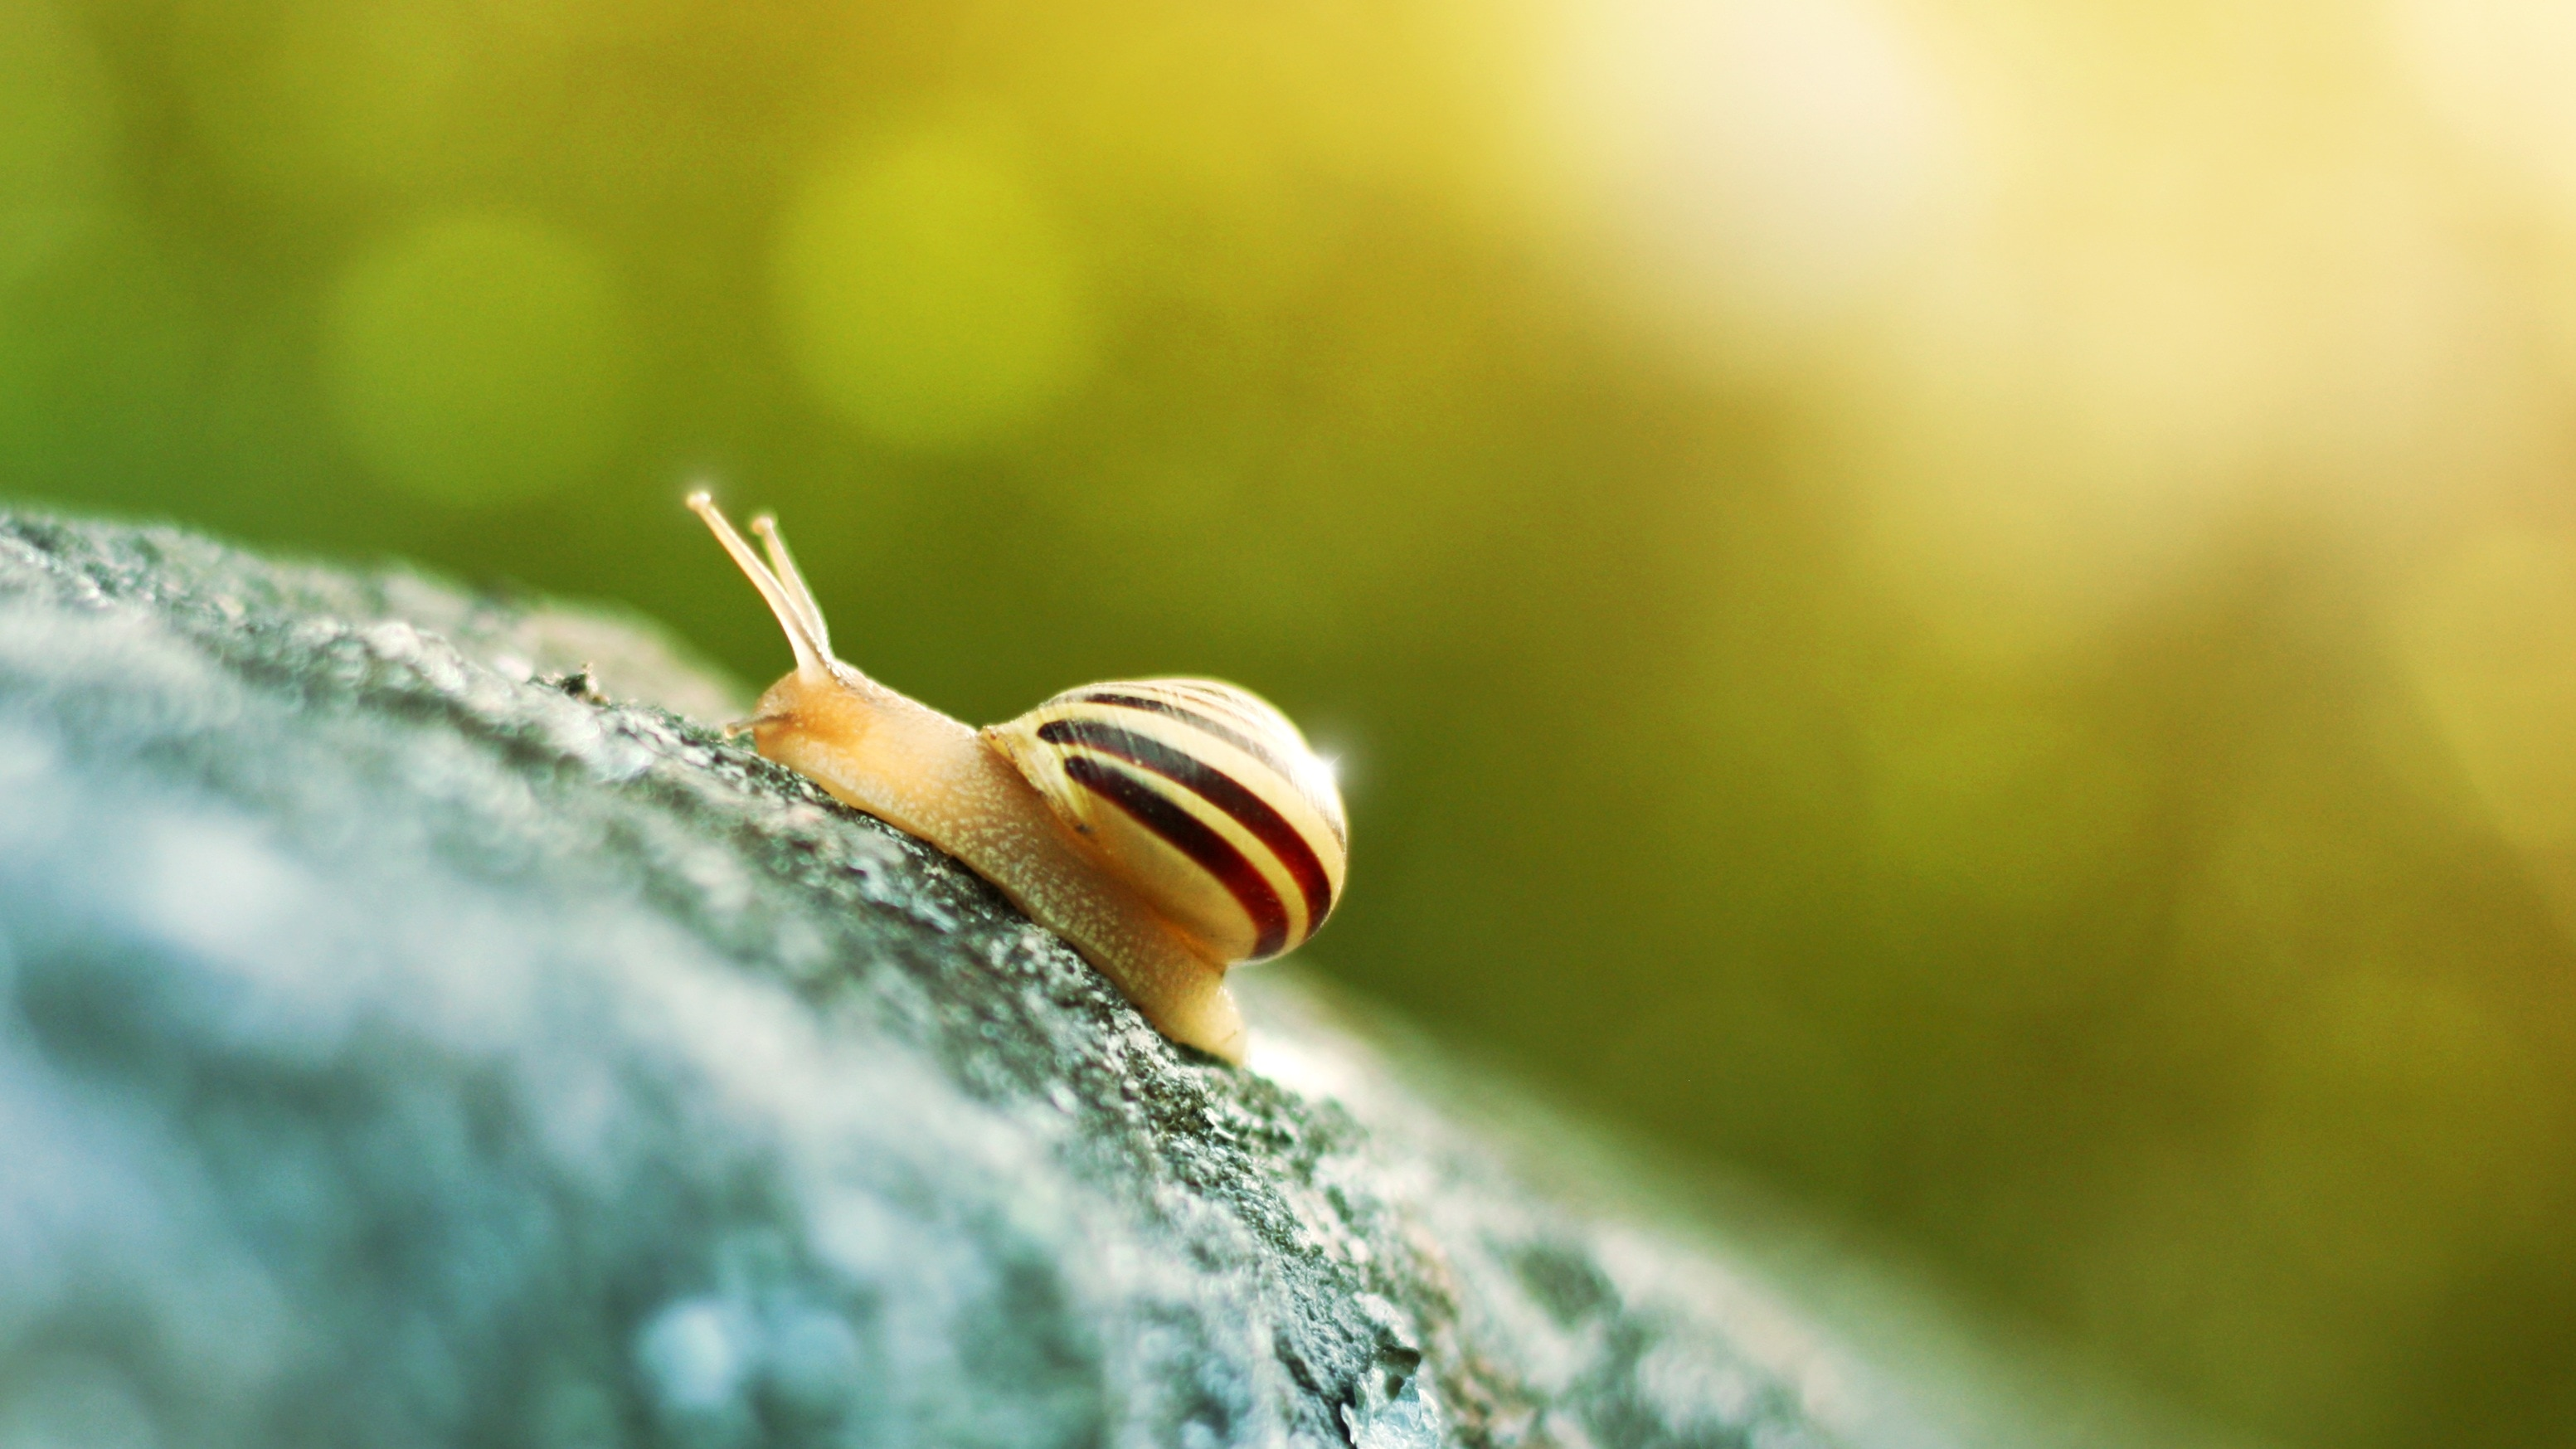 Black And Orange Wallpaper Beige And Black Snail Free Image Peakpx